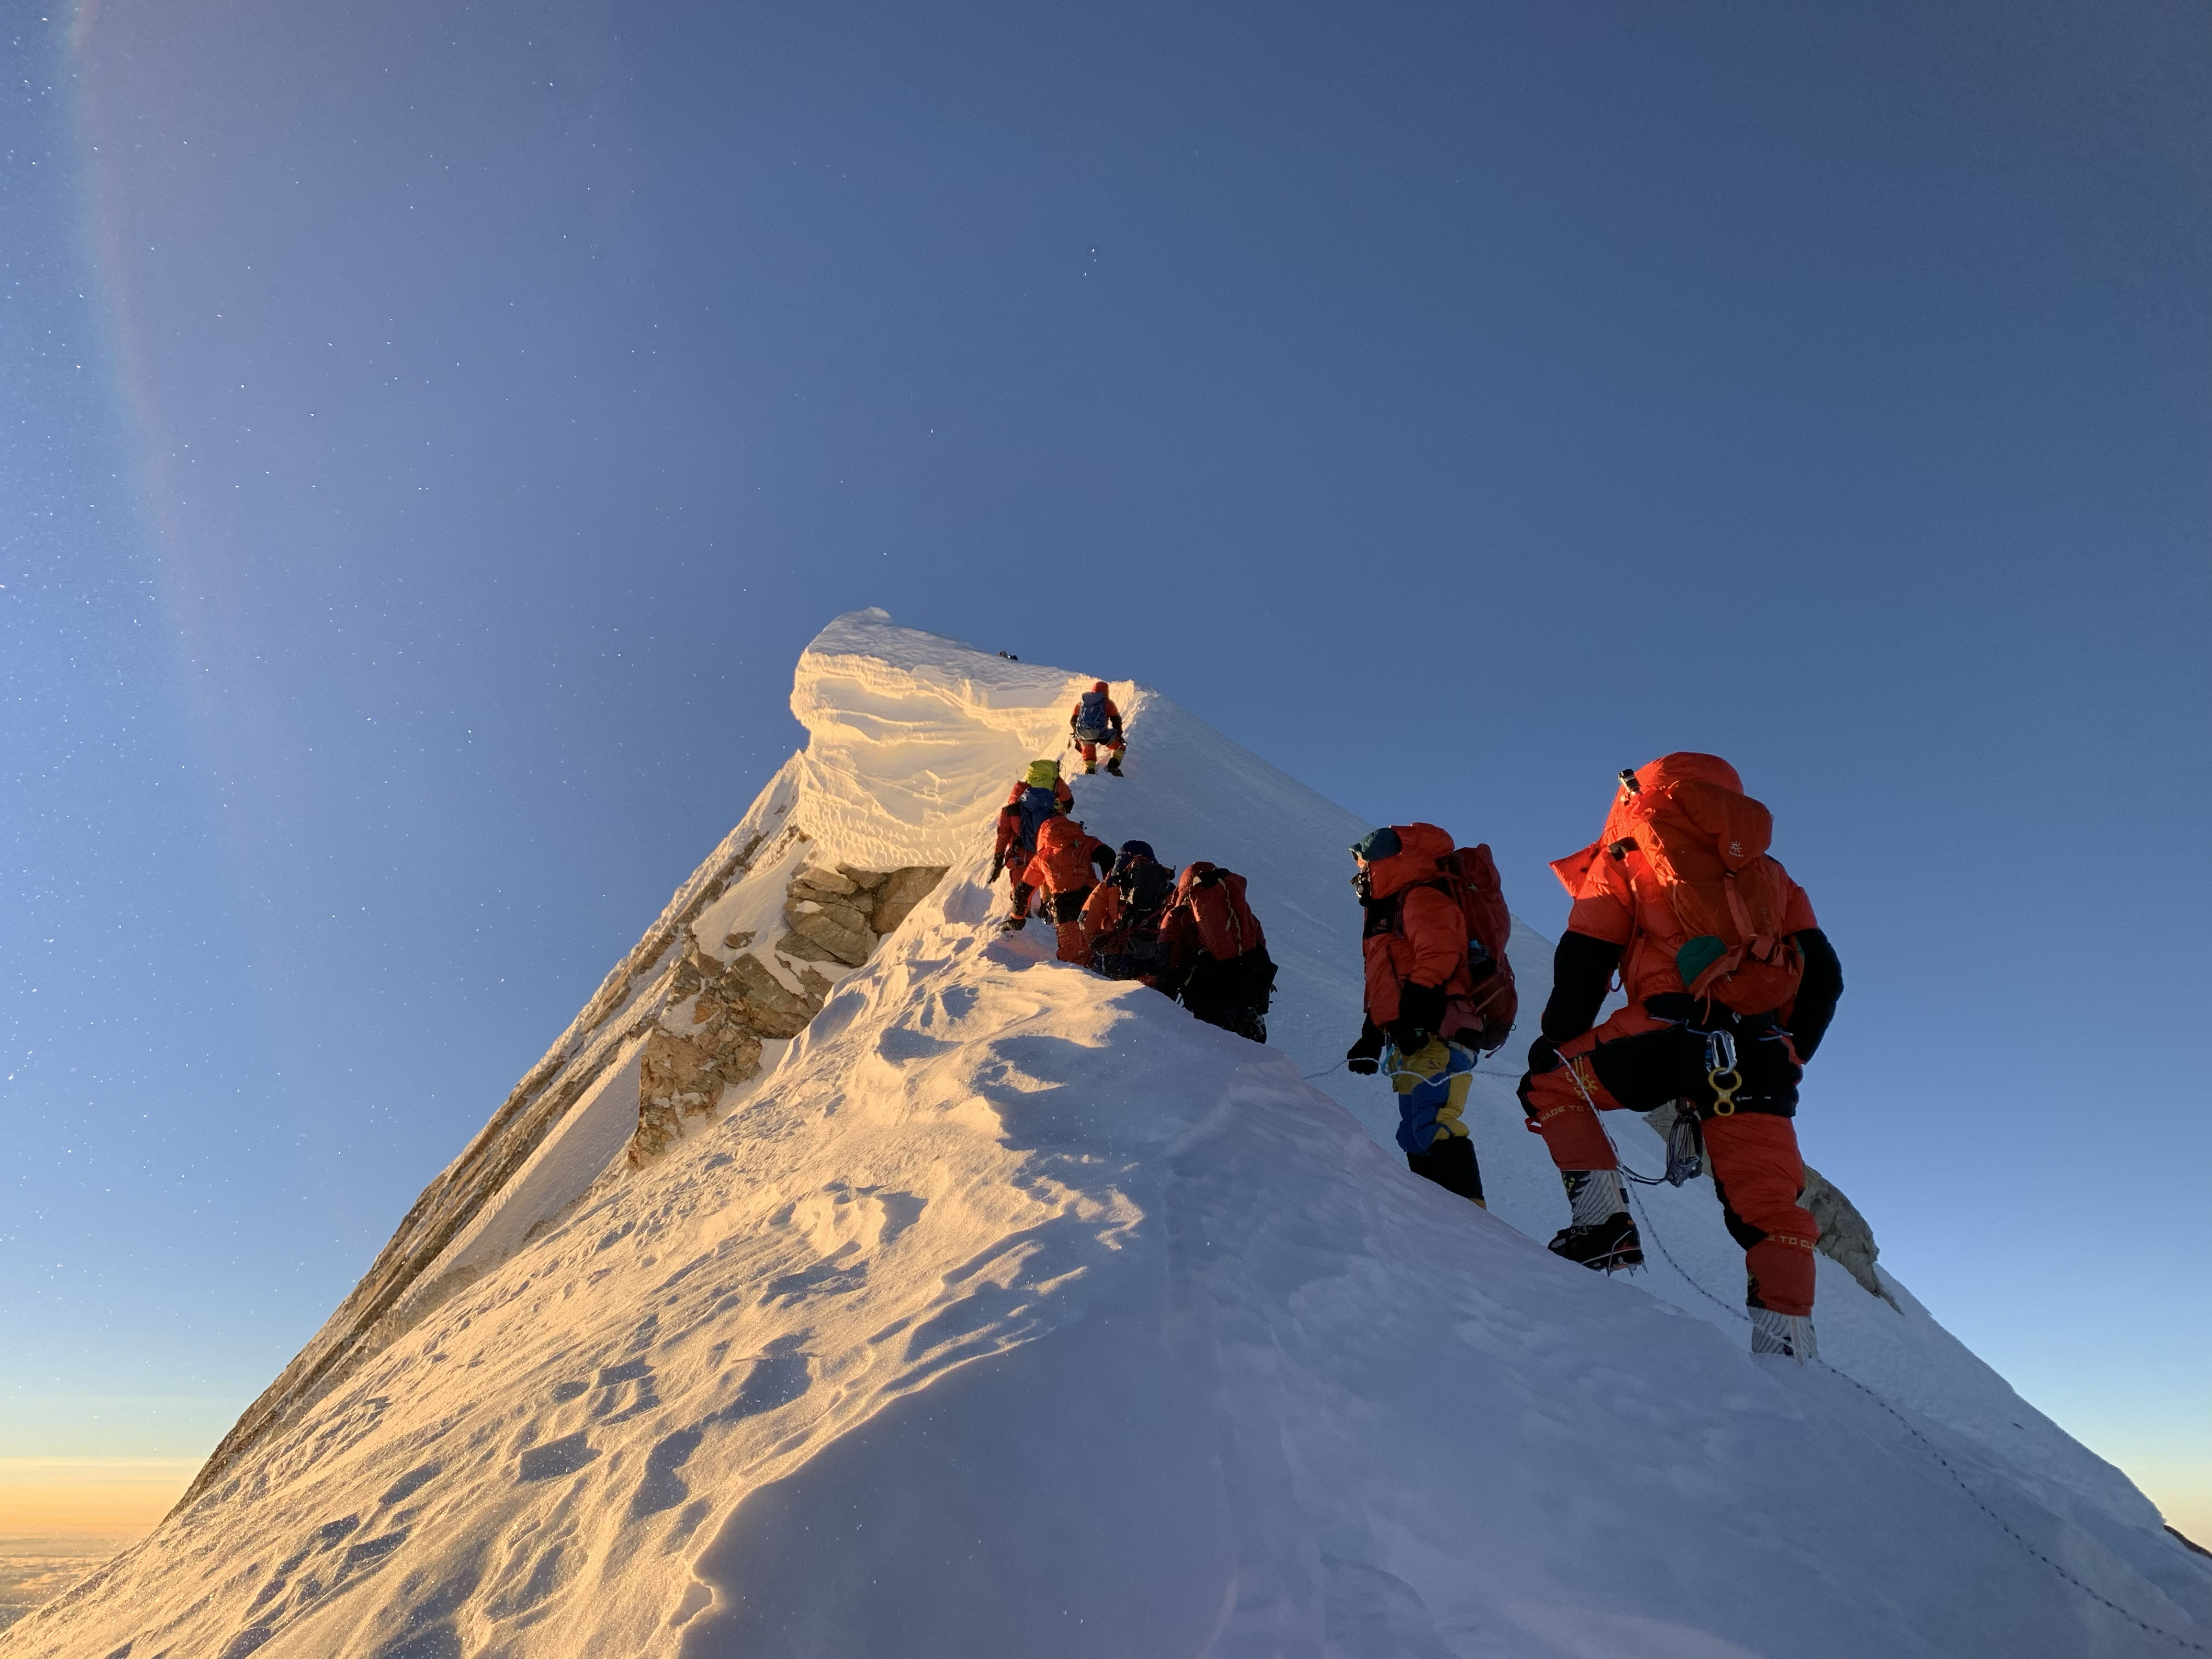 Final steps to the peak: Team of Bahrain (The Royal Body Guard) approaching to the summit of Mt. Manaslu 8163, on October 15, 2020. Photo Courtesy: Seven Summit Treks